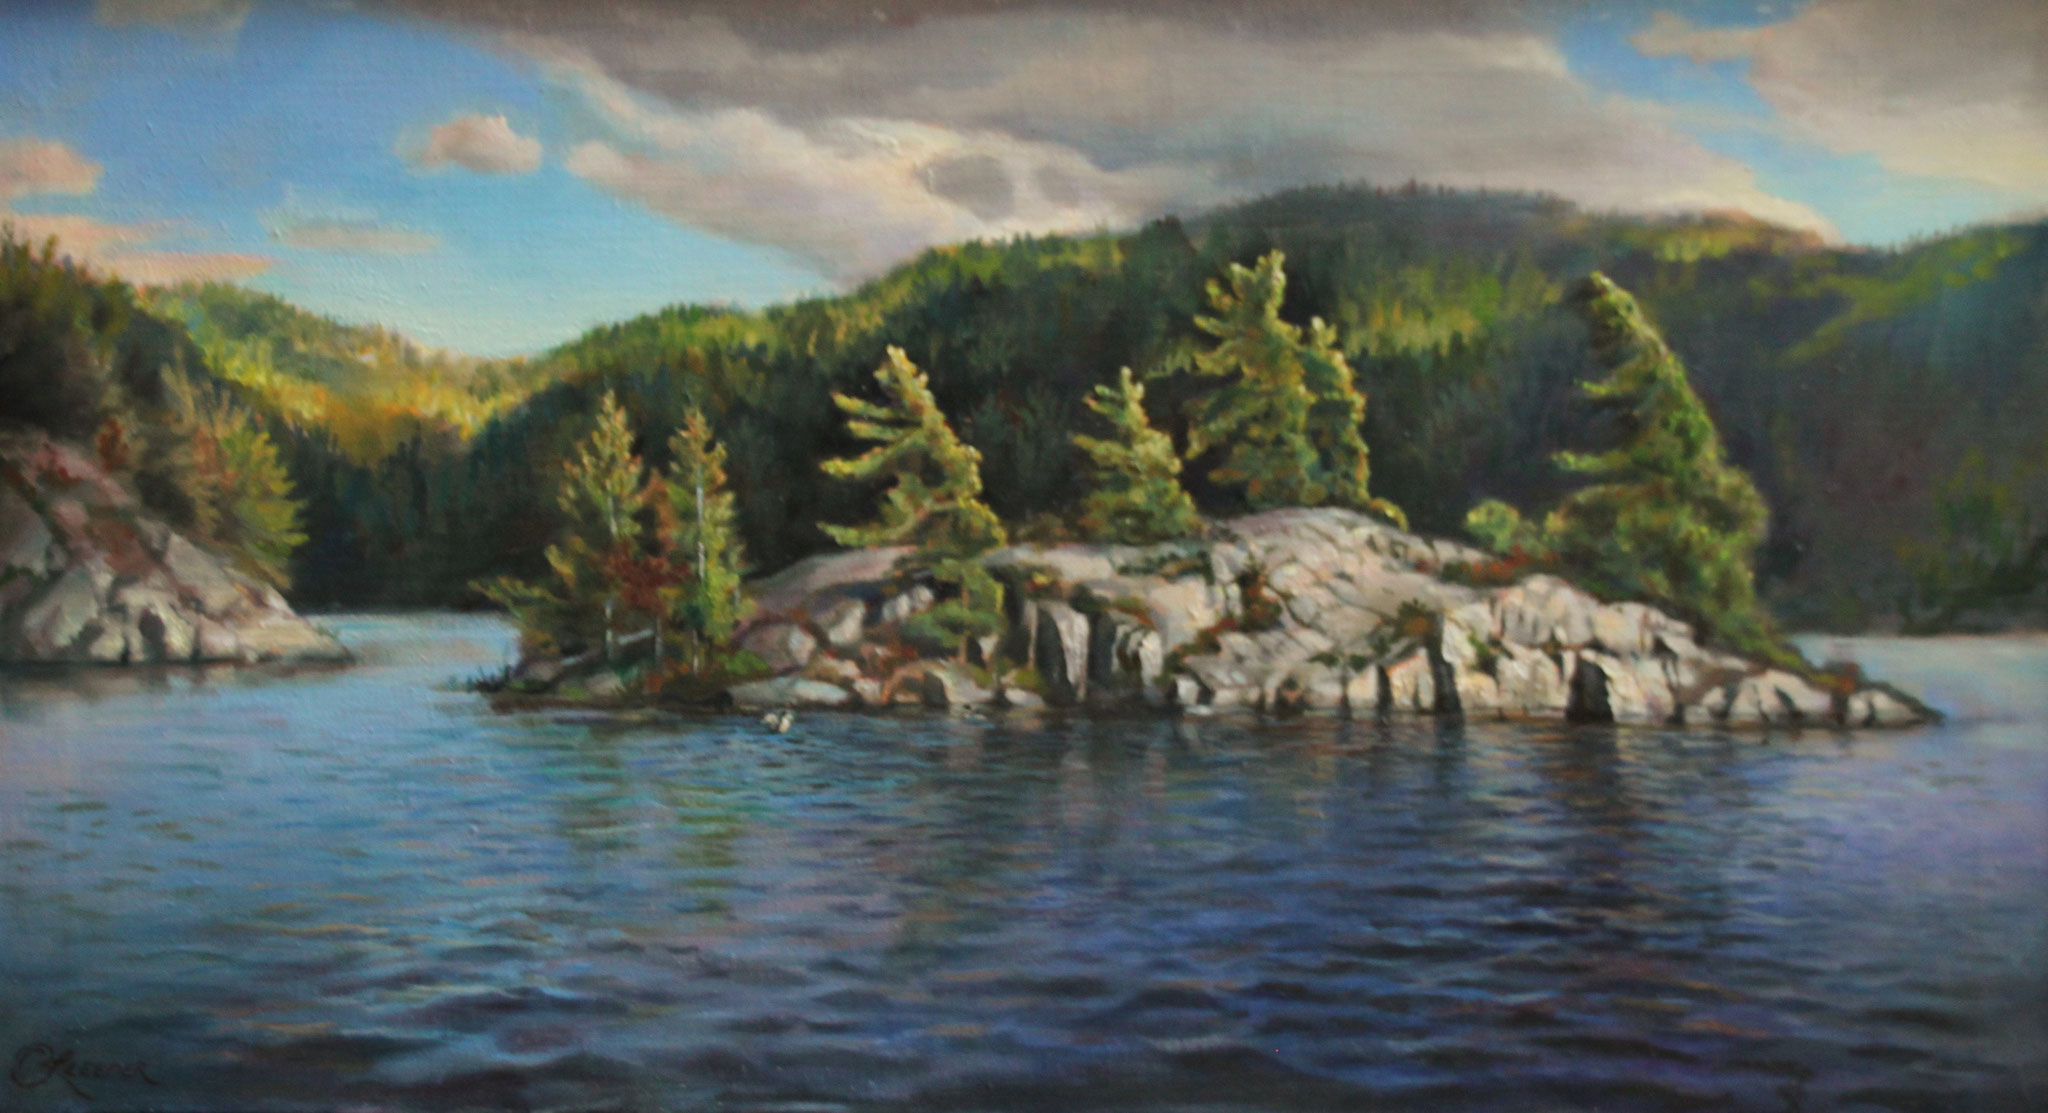 WEBER ISLAND 22 x 40 oil on fine linen by Cyril Leeper